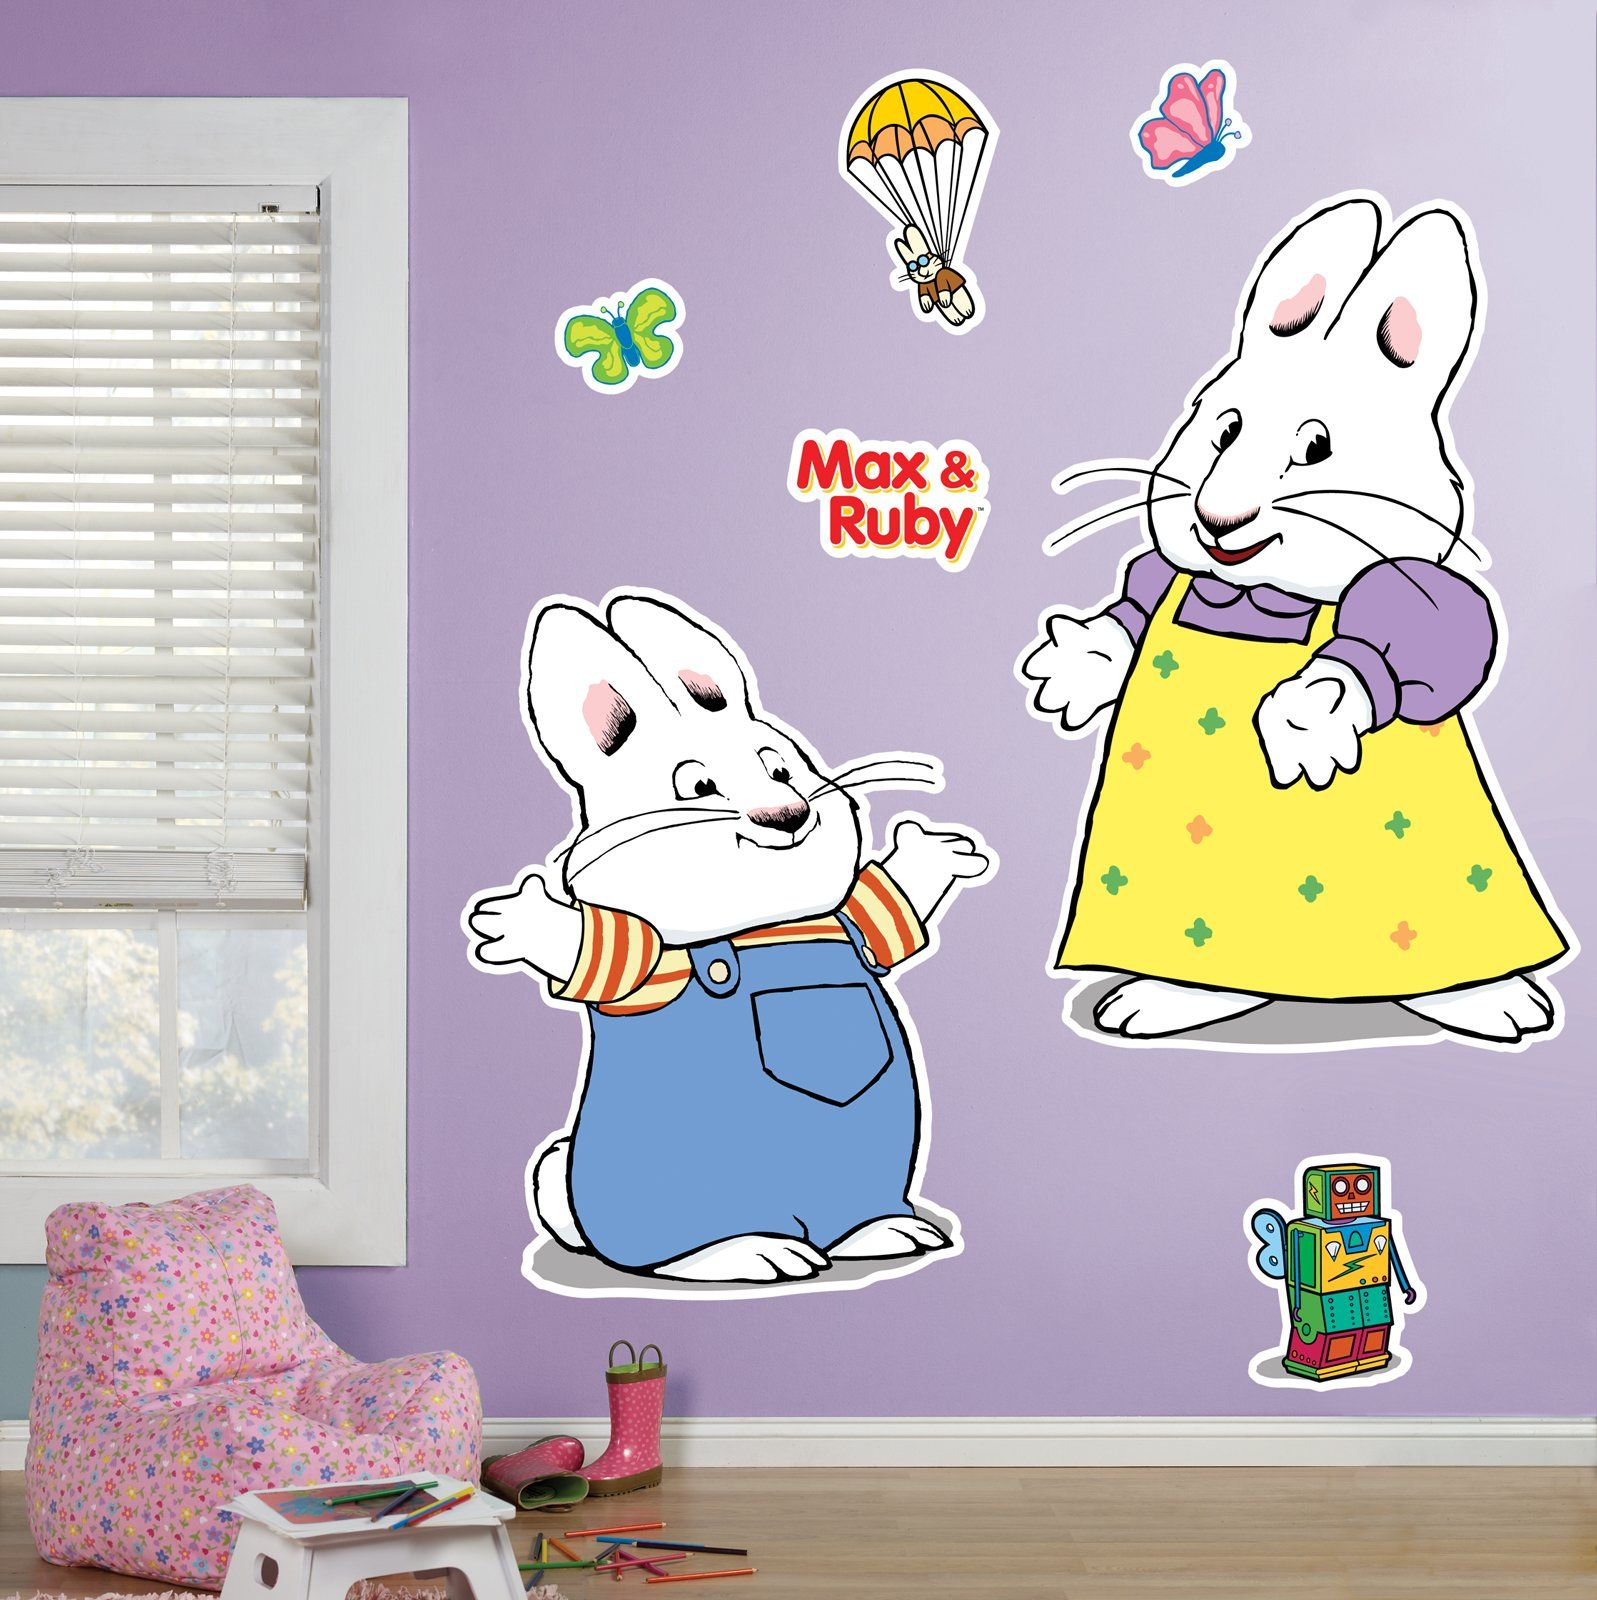 max and ruby giant wall decals